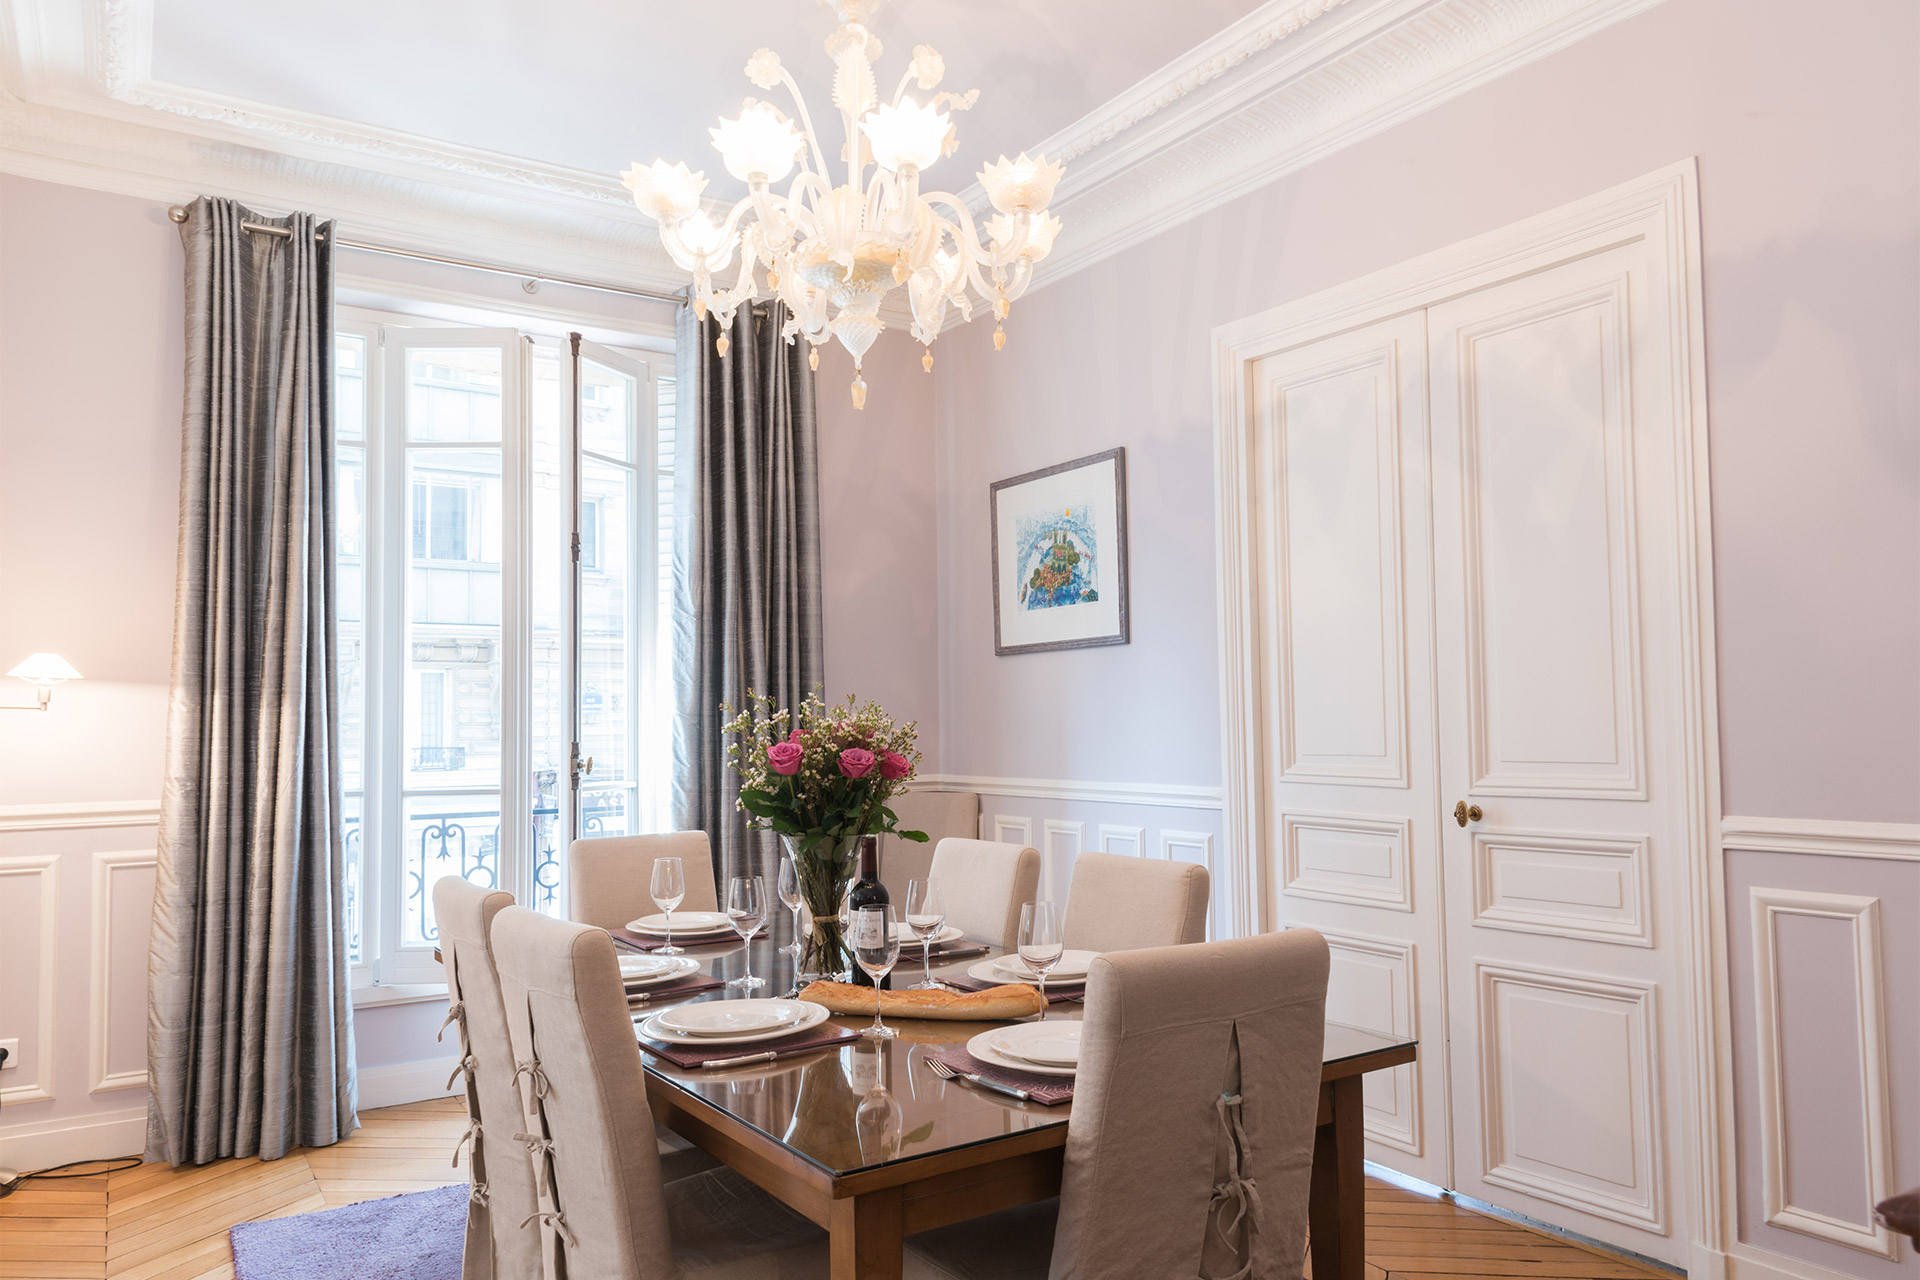 Elegant dining table seats six guests in the Maubert vacation rental offered by Paris Perfect